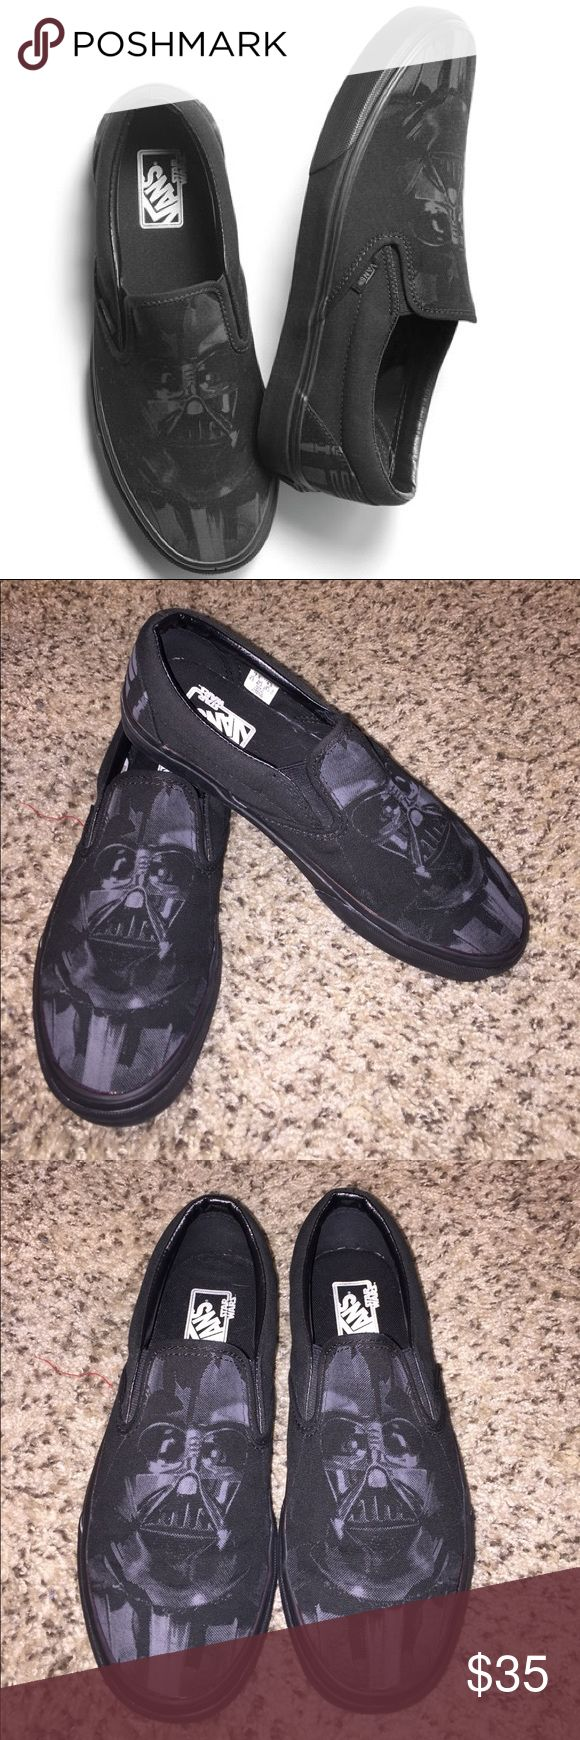 """Vans x StarWars Vader Slip ons Limited edition Star Wars """"dark side"""" collab. Impossible to find now. Wore these twice but they're too small and I'm very sad to let them go. No tears or stains. No wear to the sole. Been sitting in the back of my closet for 3 years untouched. Price firm on all my vans shoes. Vans Shoes Sneakers"""